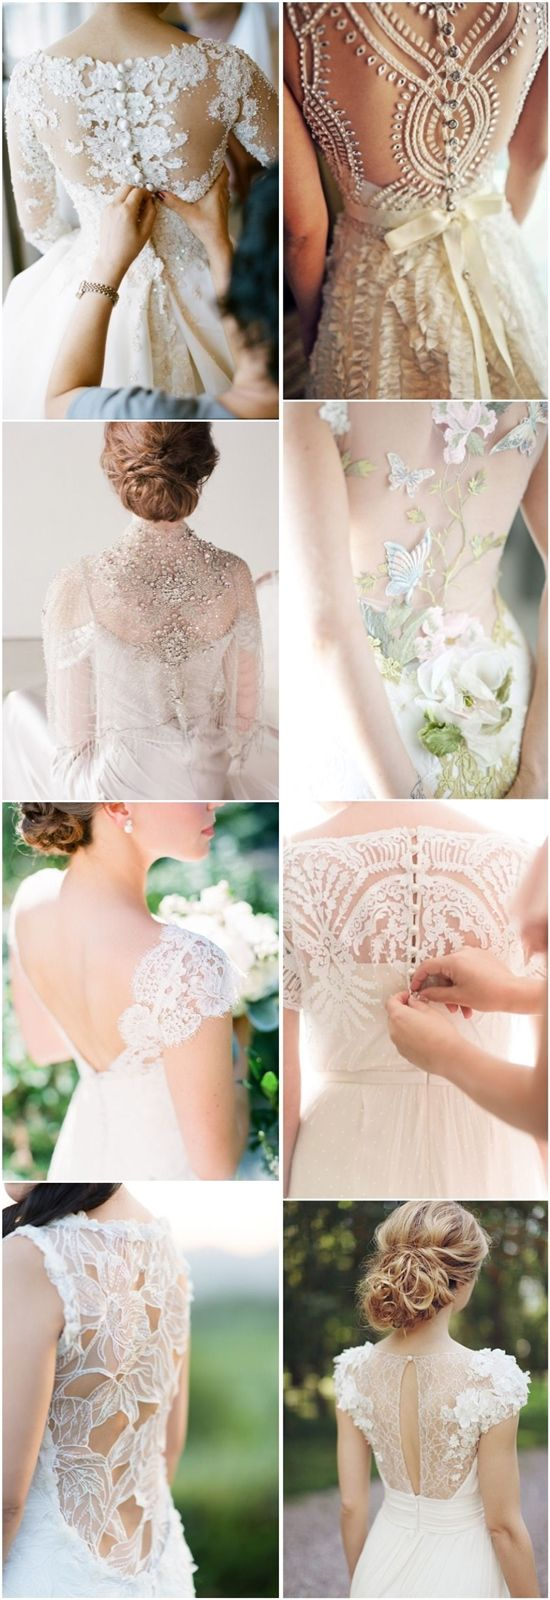 vintage wedding dresses-lace bridal gowns / http://www.deerpearlflowers.com/35-wedding-dress-back-styles-we-love/